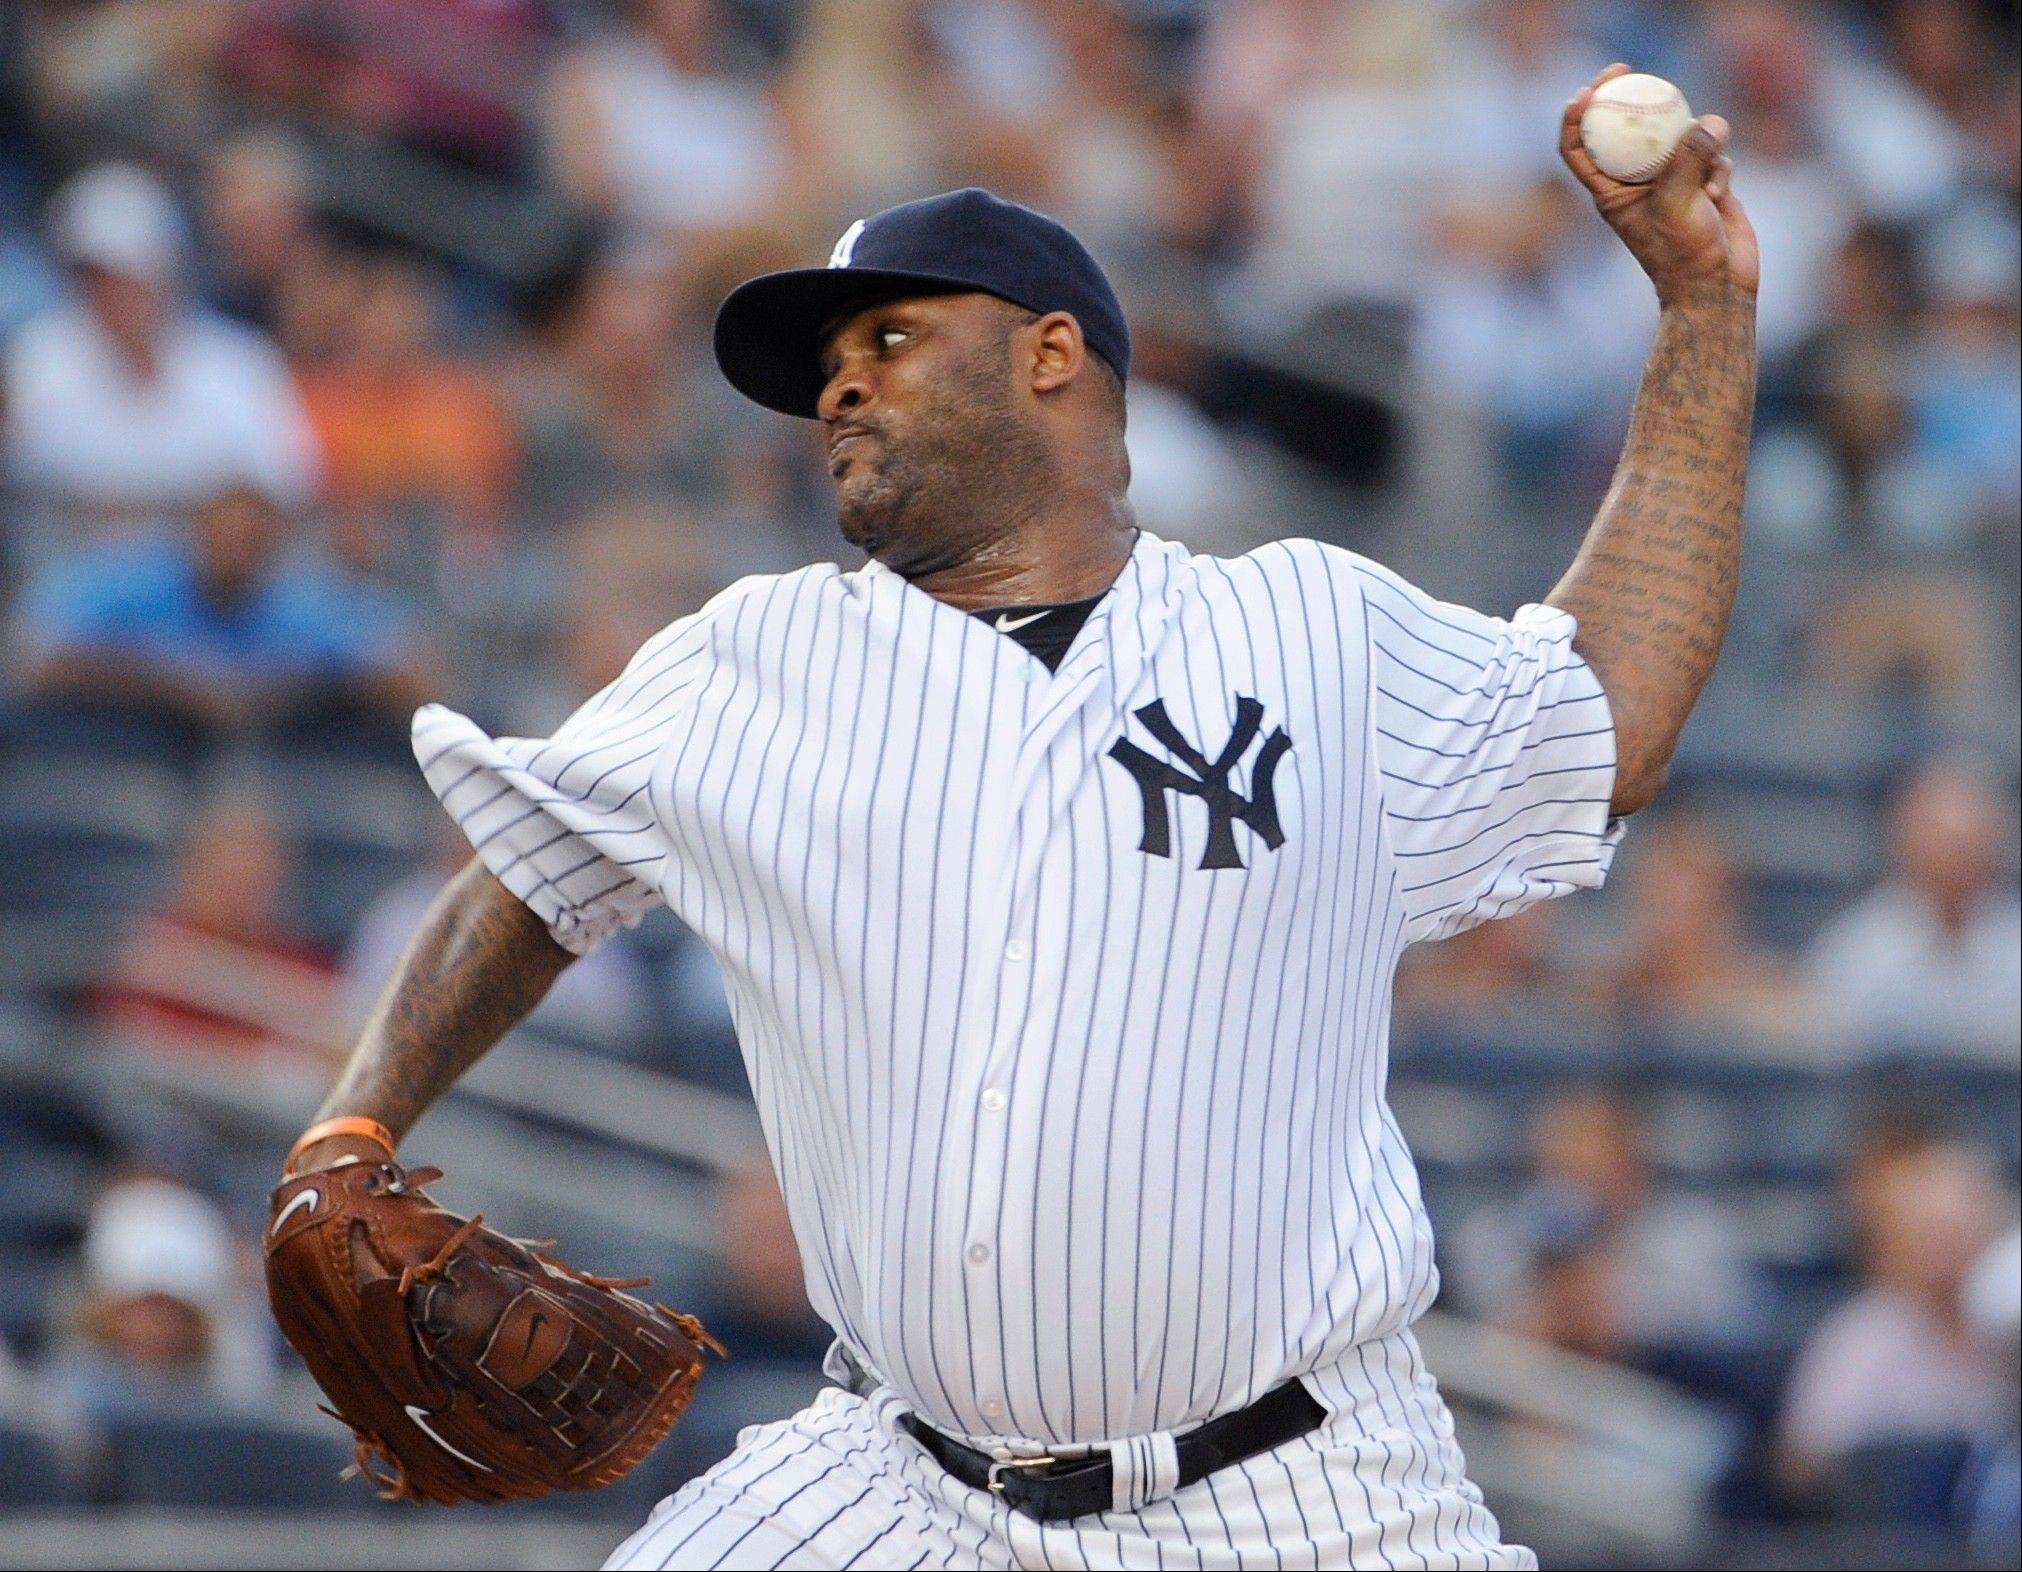 New York Yankees starting pitcher CC Sabathia improved to 8-0 with a 1.20 ERA in his past eight starts against the Mariners on Friday.